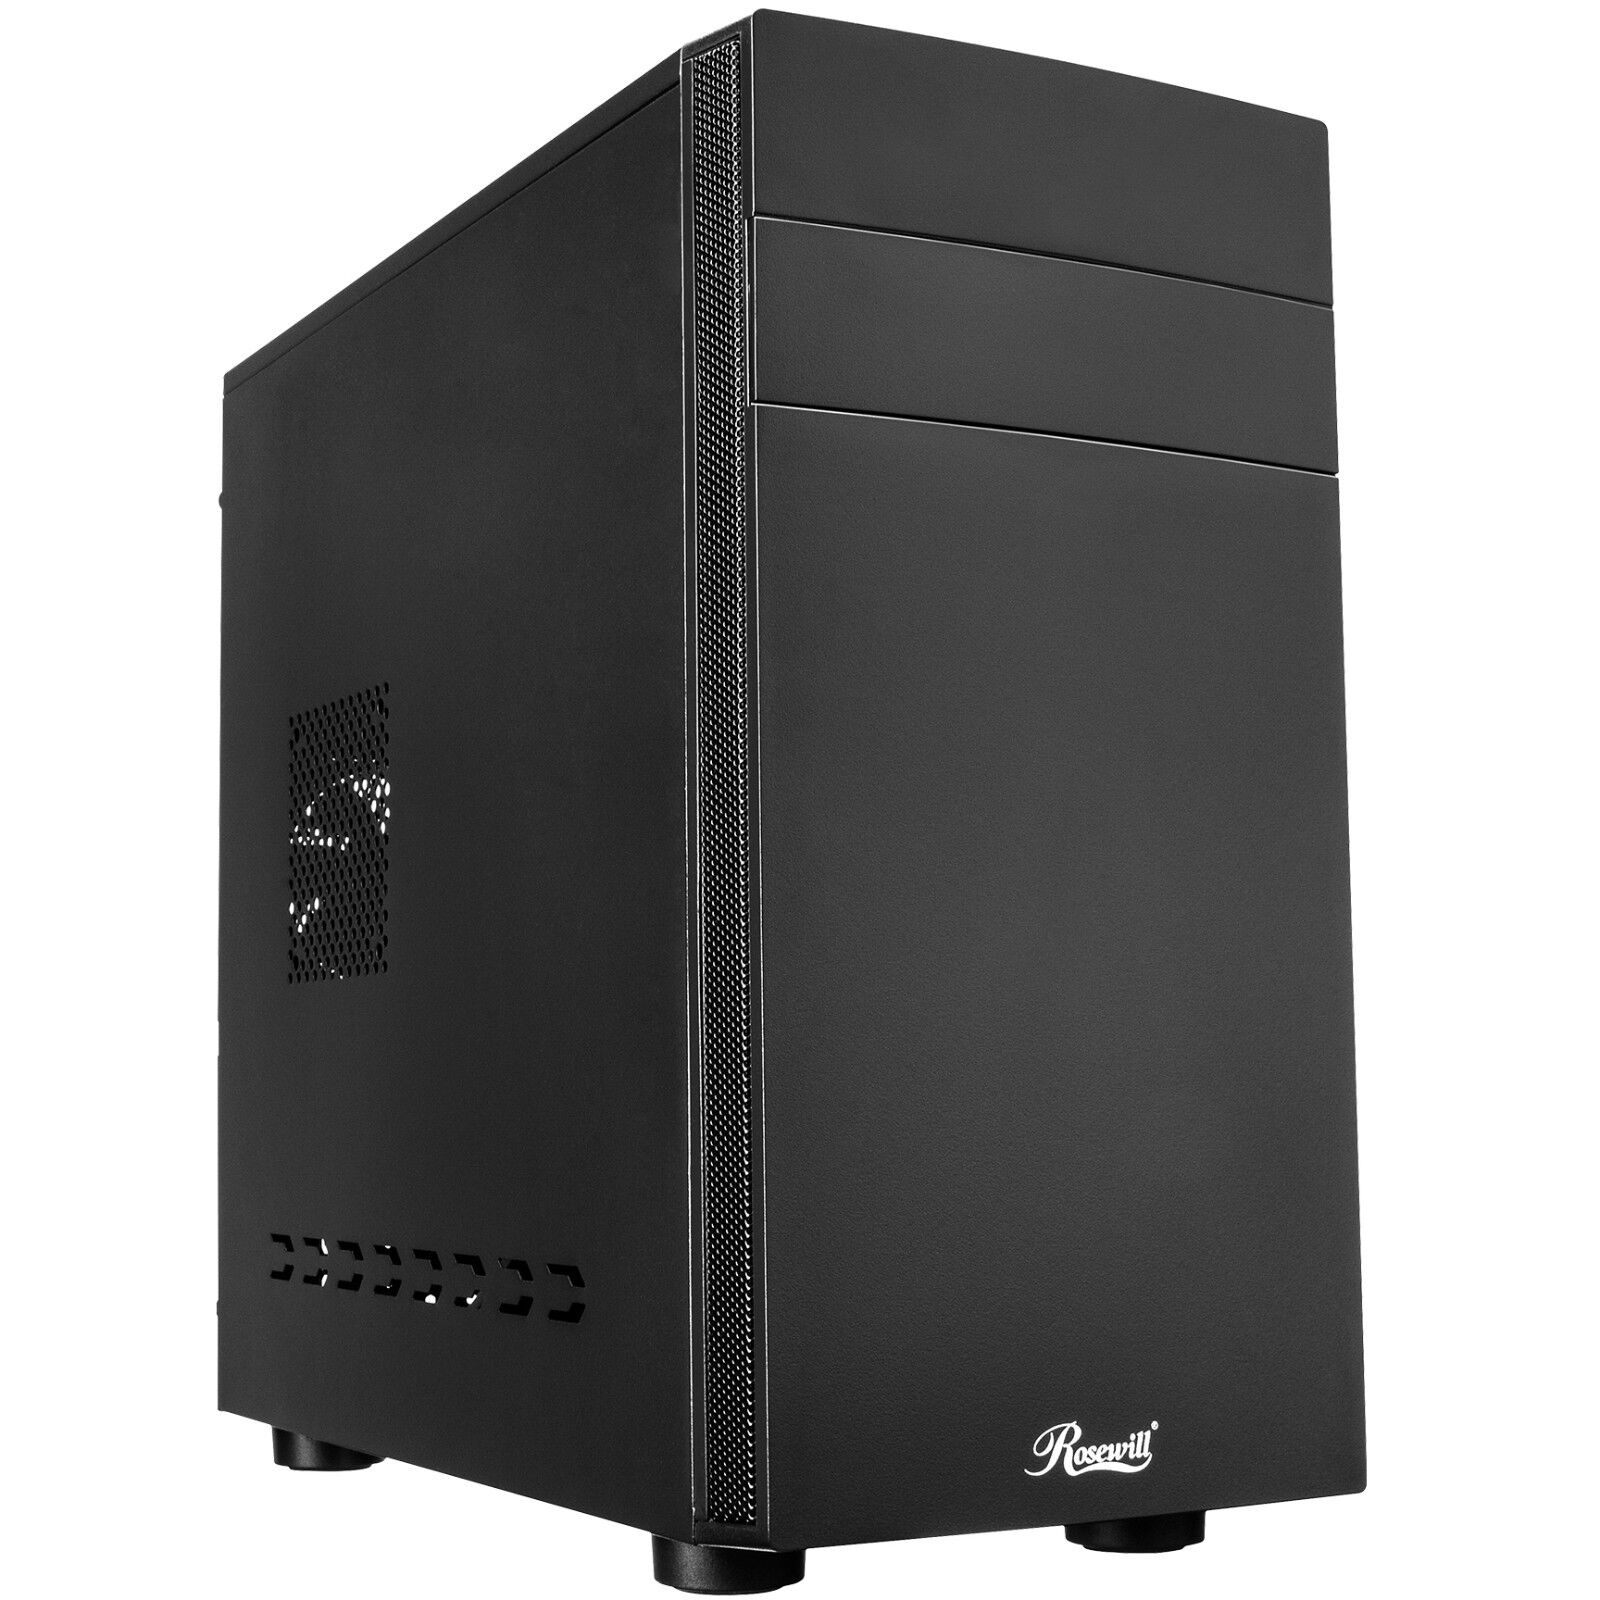 Micro ATX Computer Case, Mini Tower Office Desktop PC with U